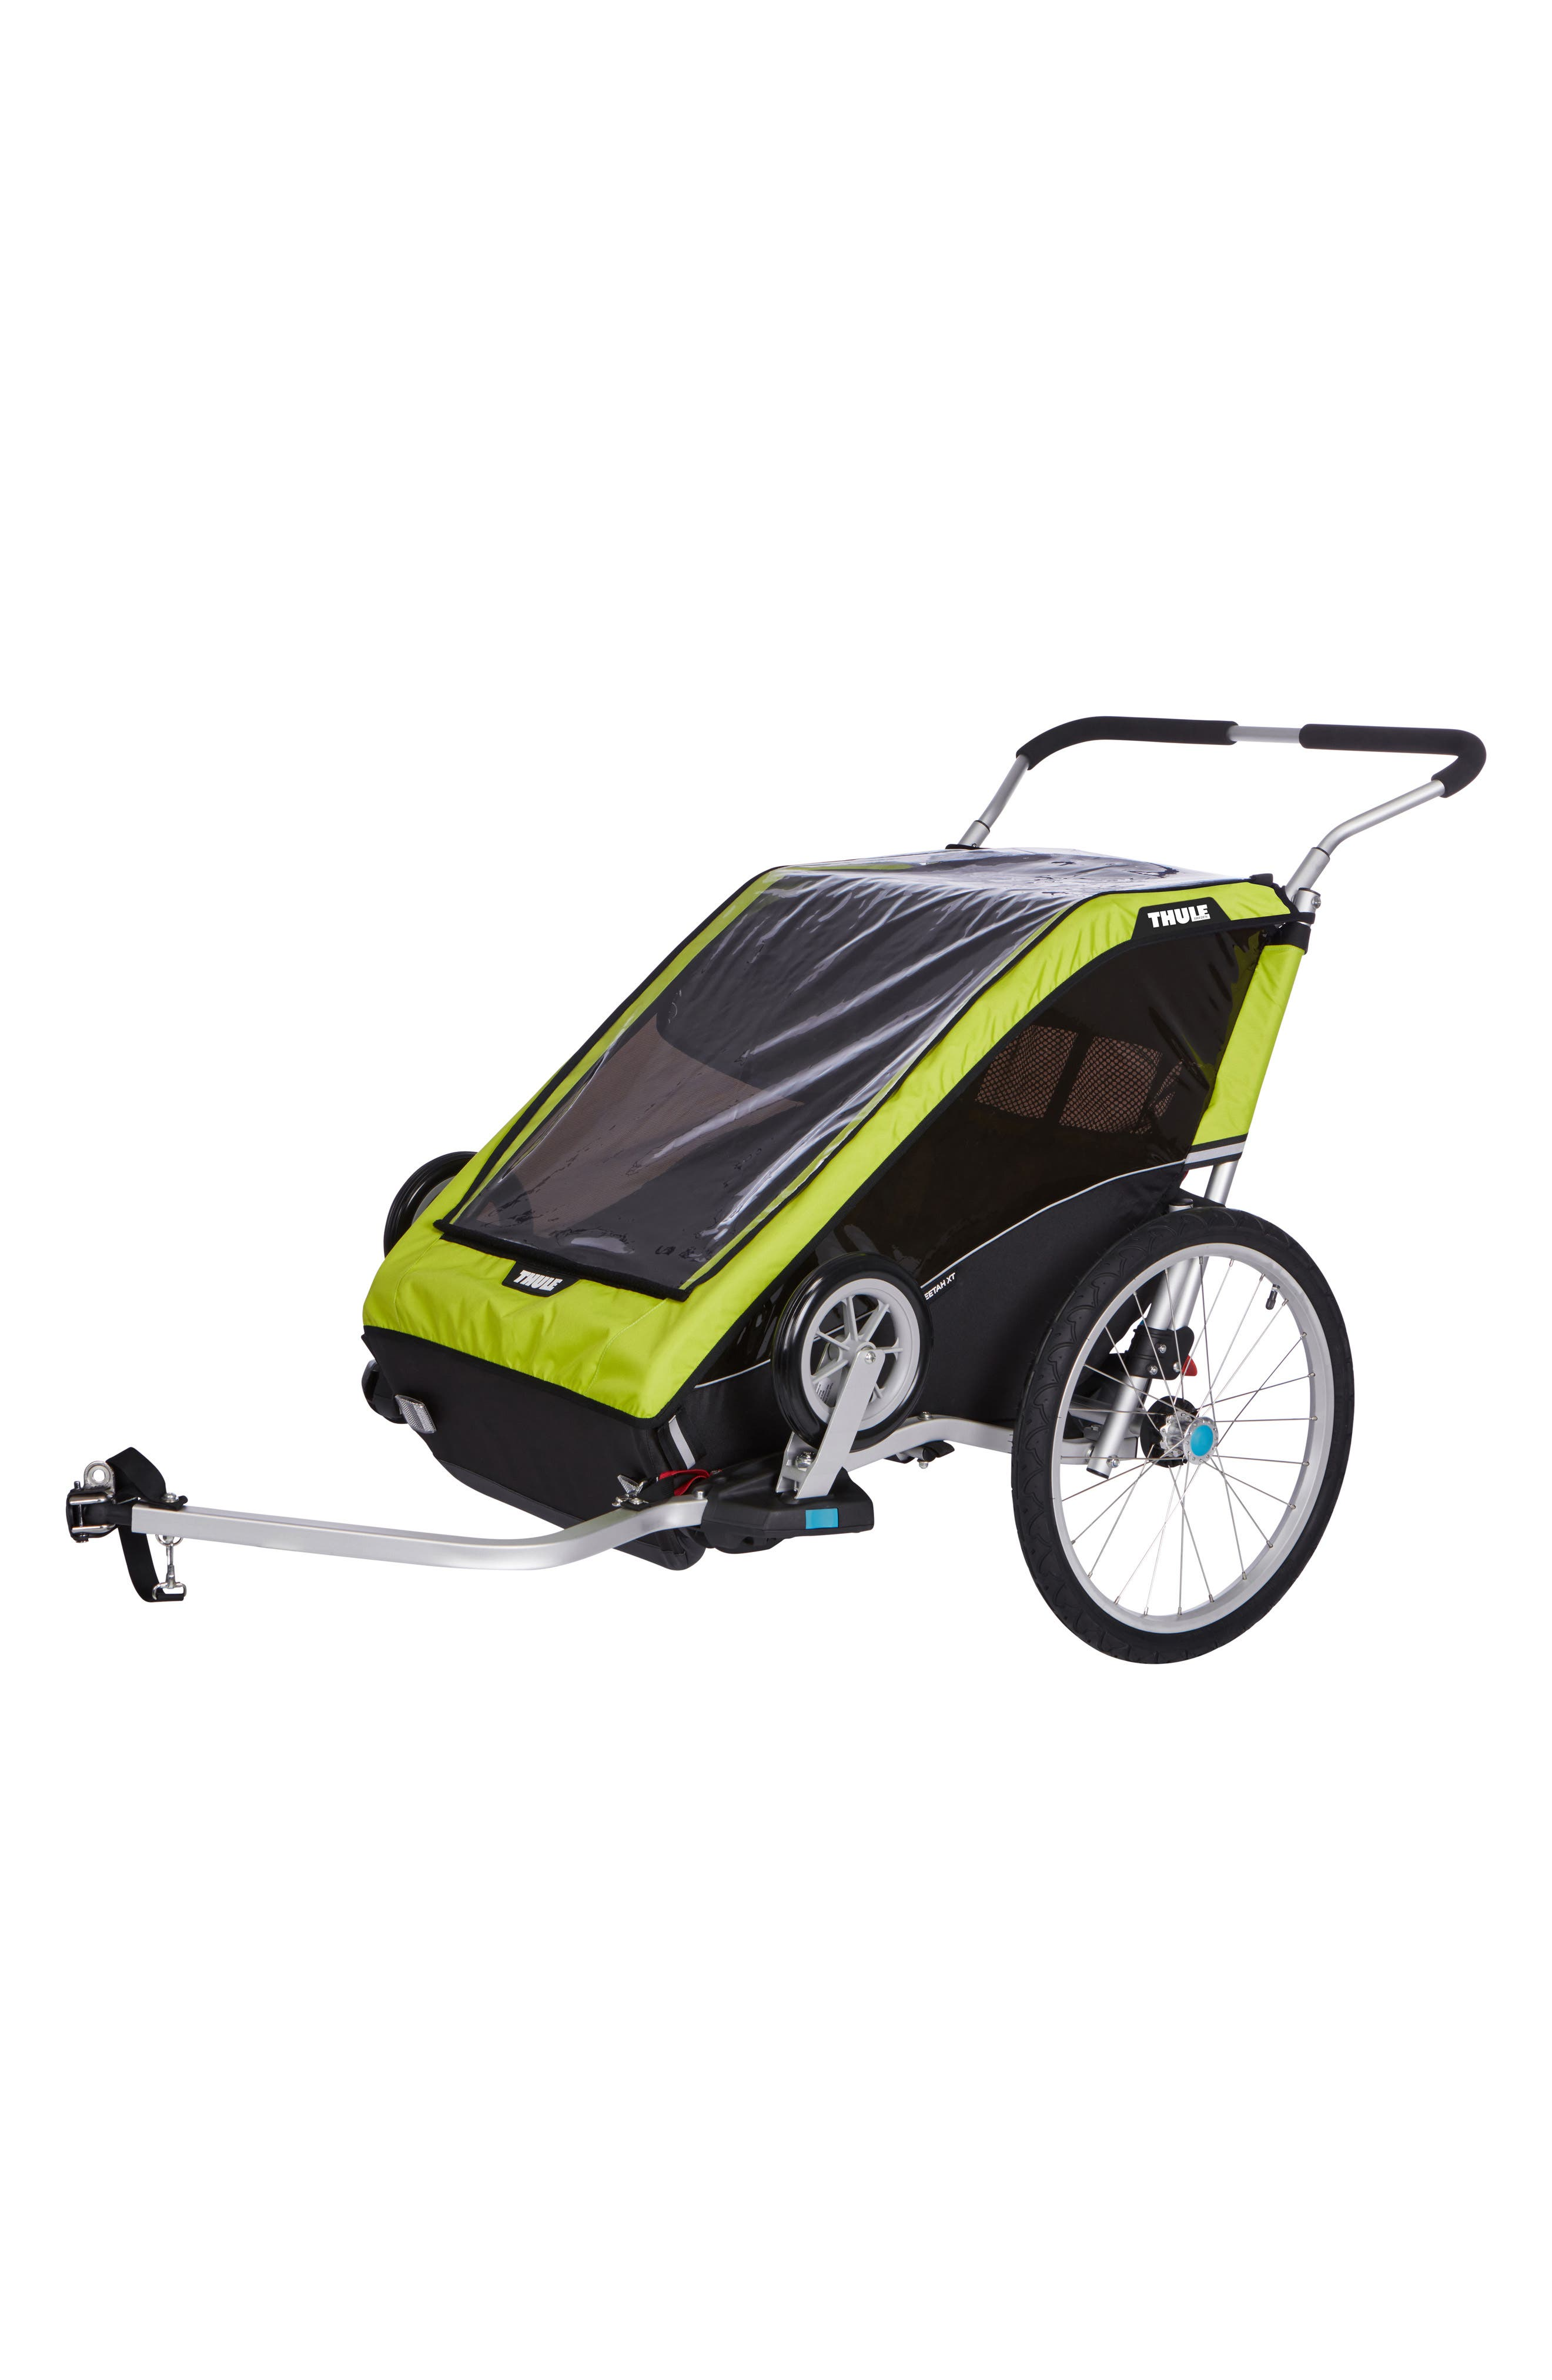 Chariot Cheetah XT 2 Multisport Double Cycle Trailer/Stroller,                             Alternate thumbnail 7, color,                             Chartreuse